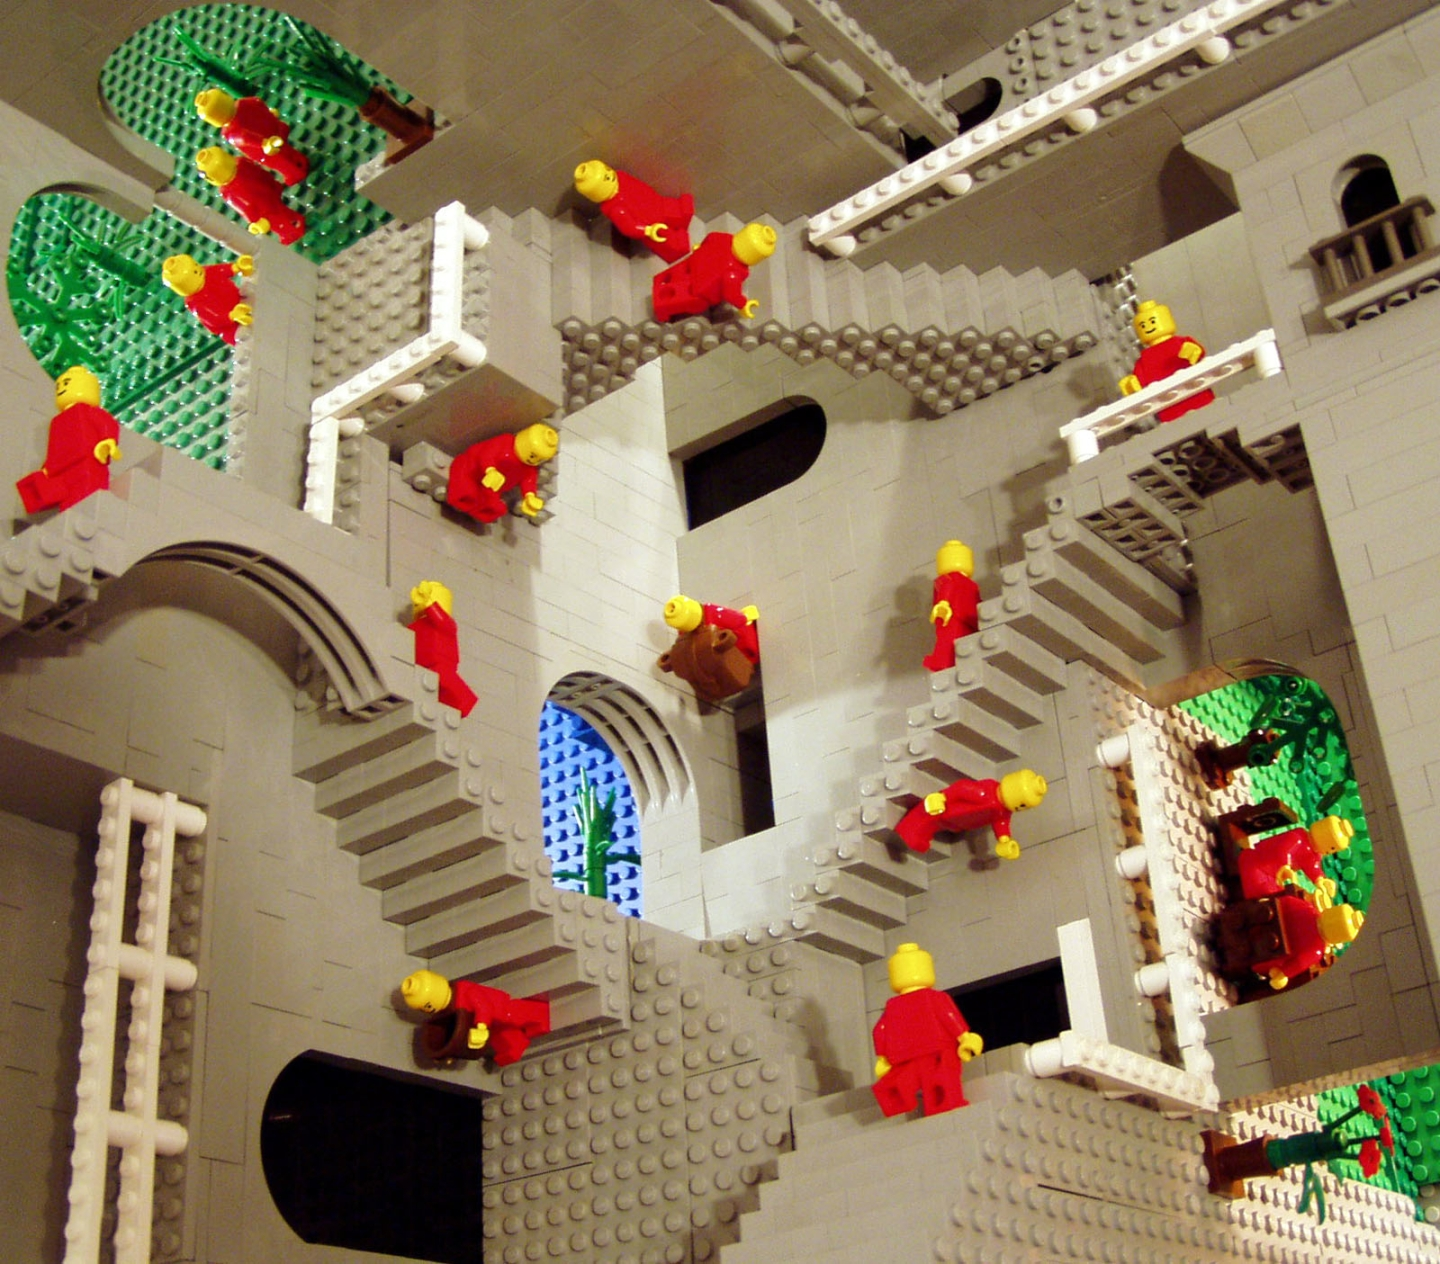 Escher Perspective in Lego, by unknown